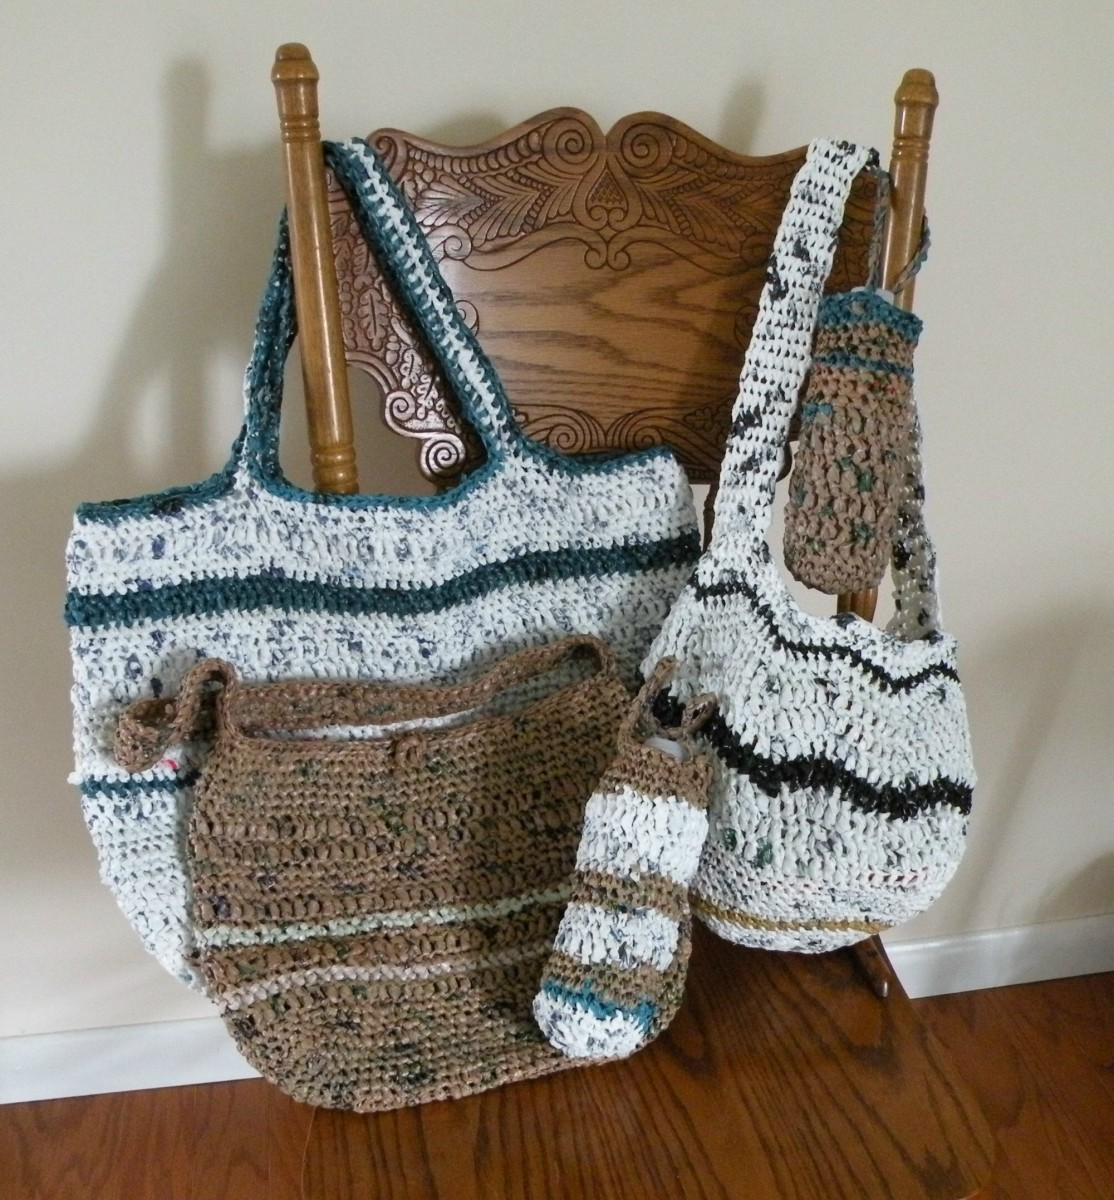 Crochet Fun Beach Bags From Recycled Plastic Bags Feltmagnet